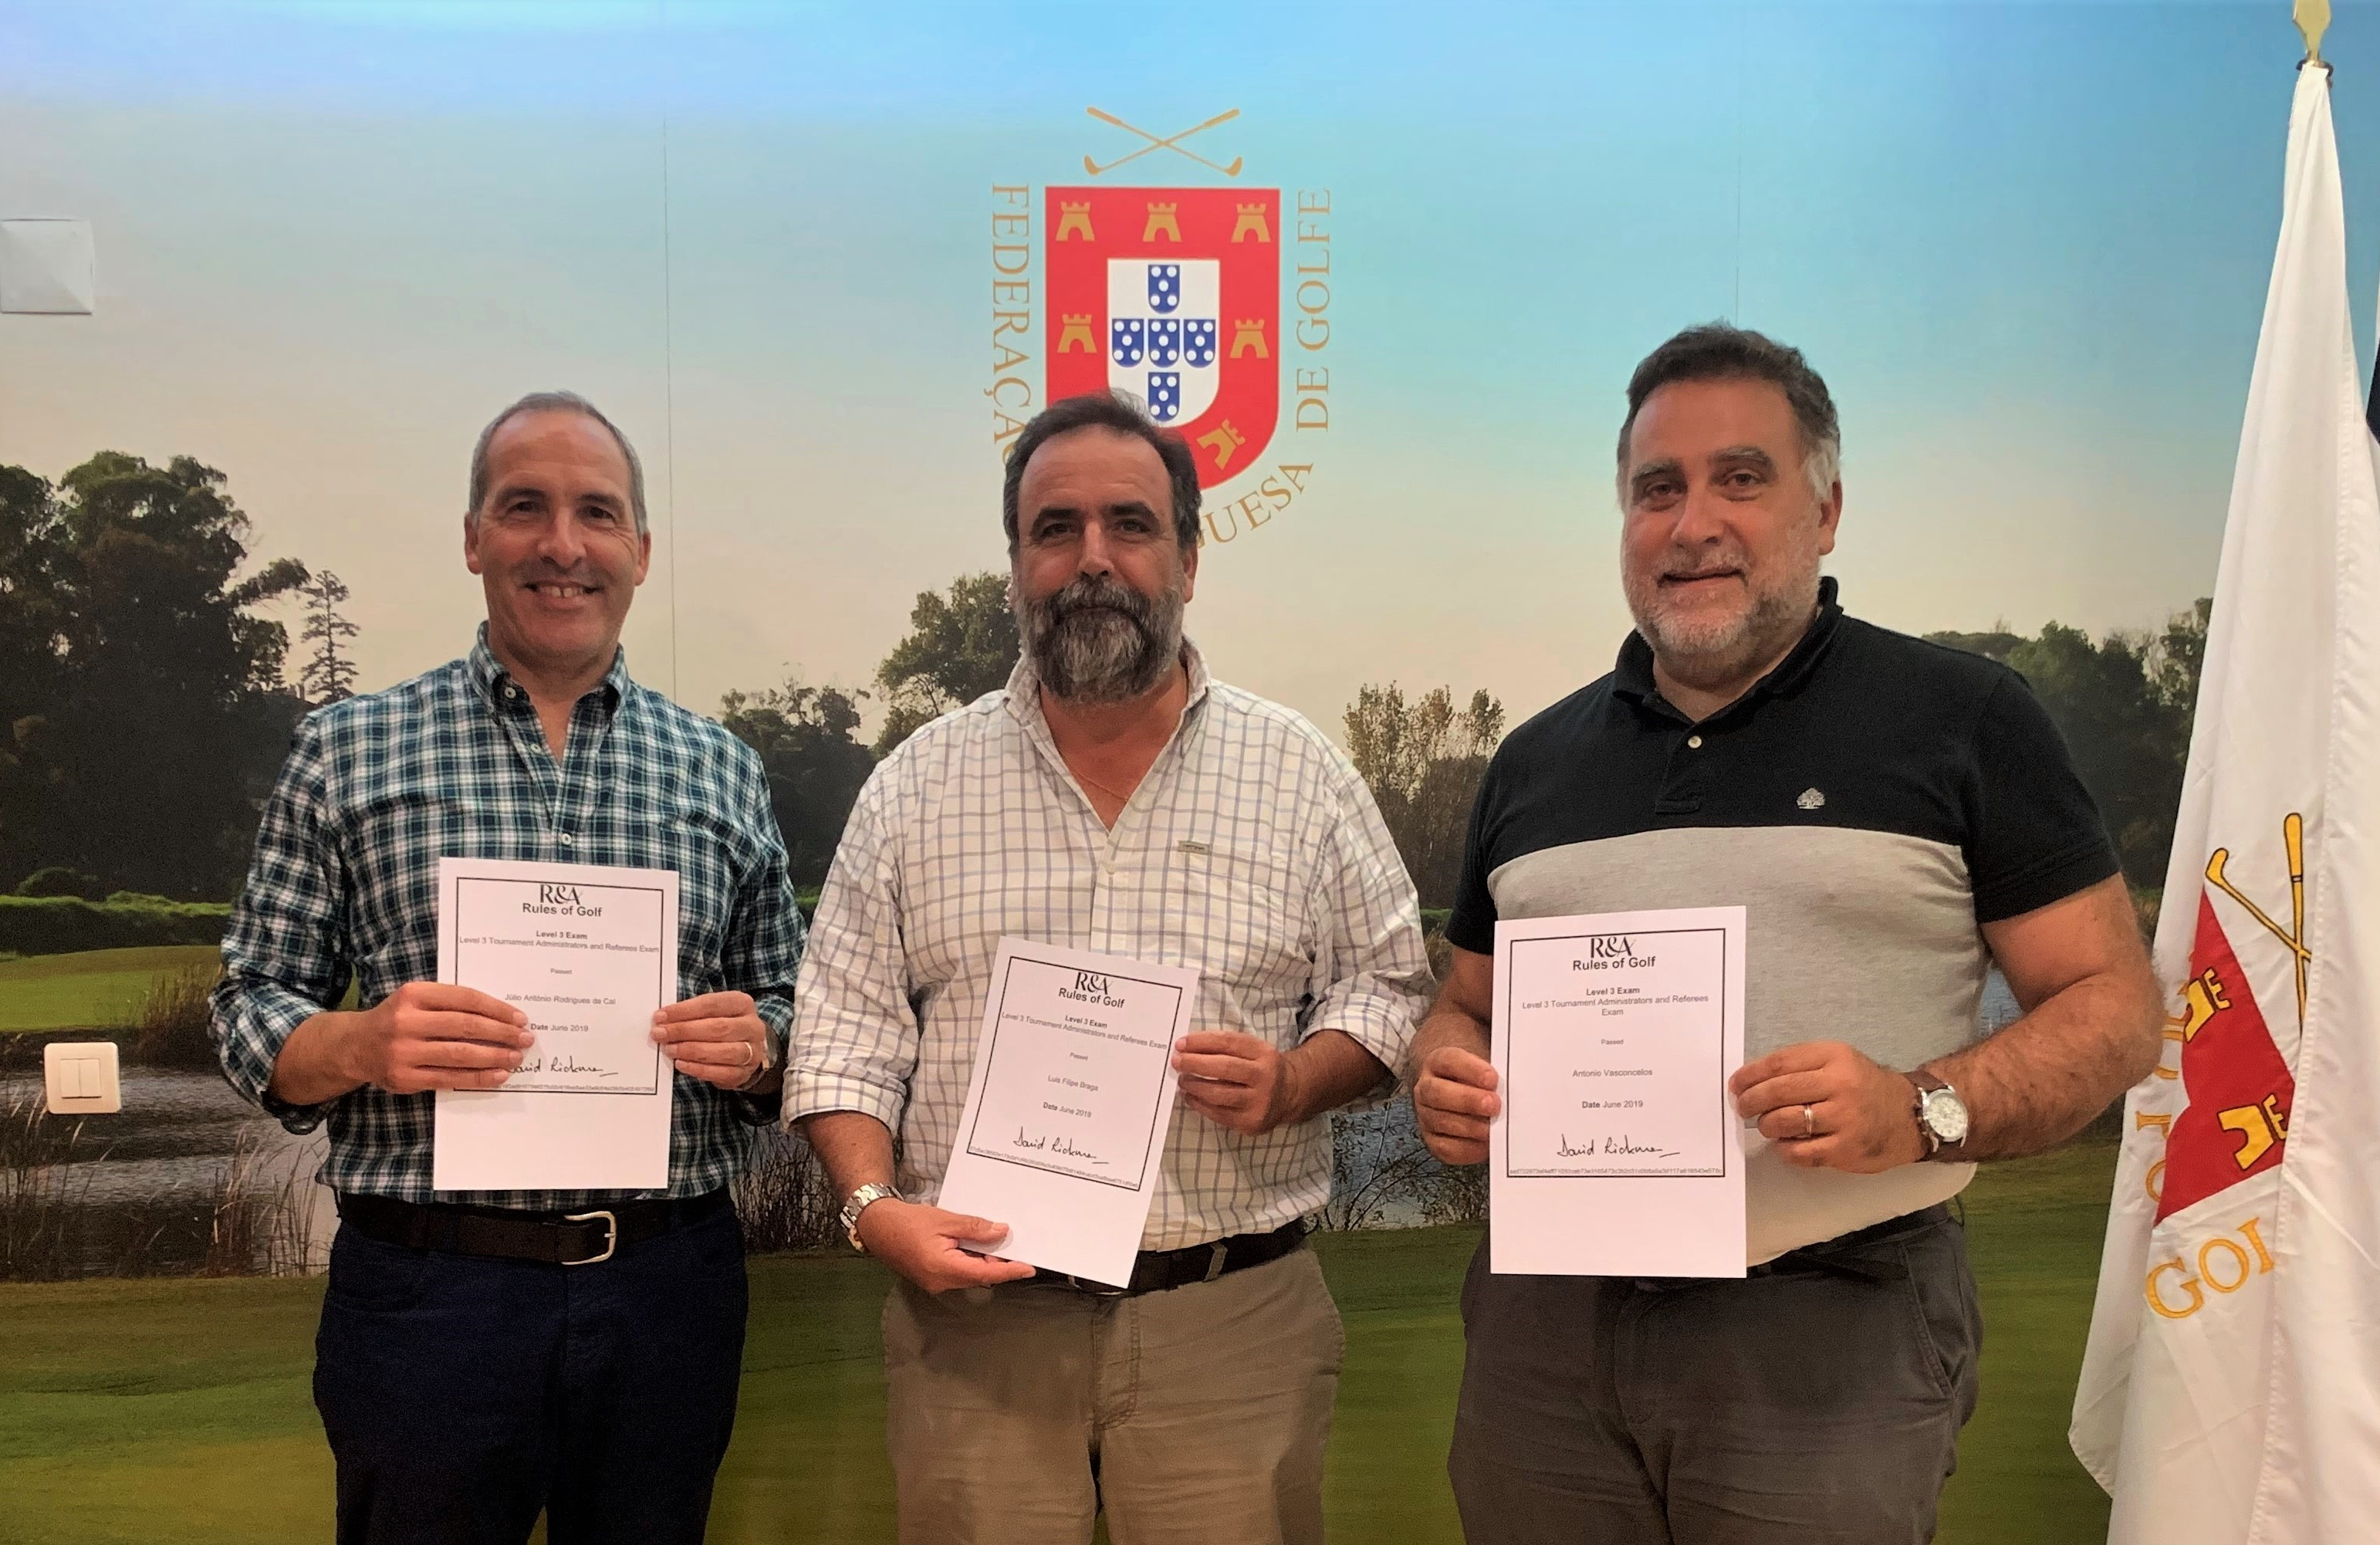 Formação Árbitros R&A Level 3 – Tournament Administrators and Referees